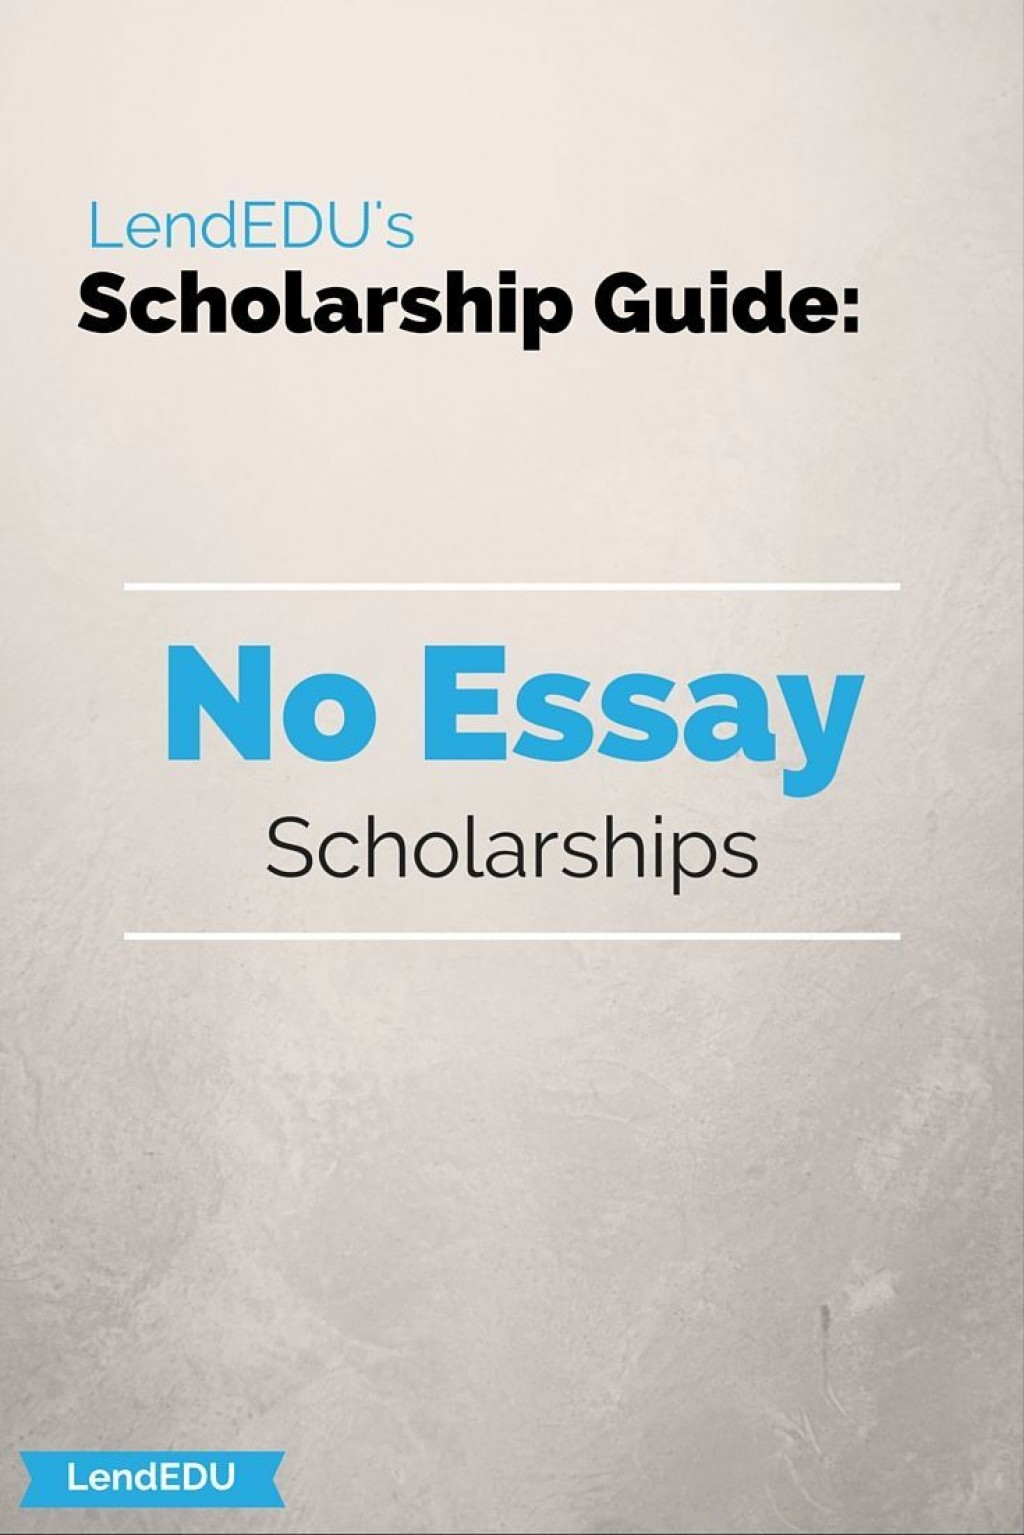 016 Essay Example No Scholarship Wondrous Scholarships 2019 Graduates For High School Seniors Applications Large